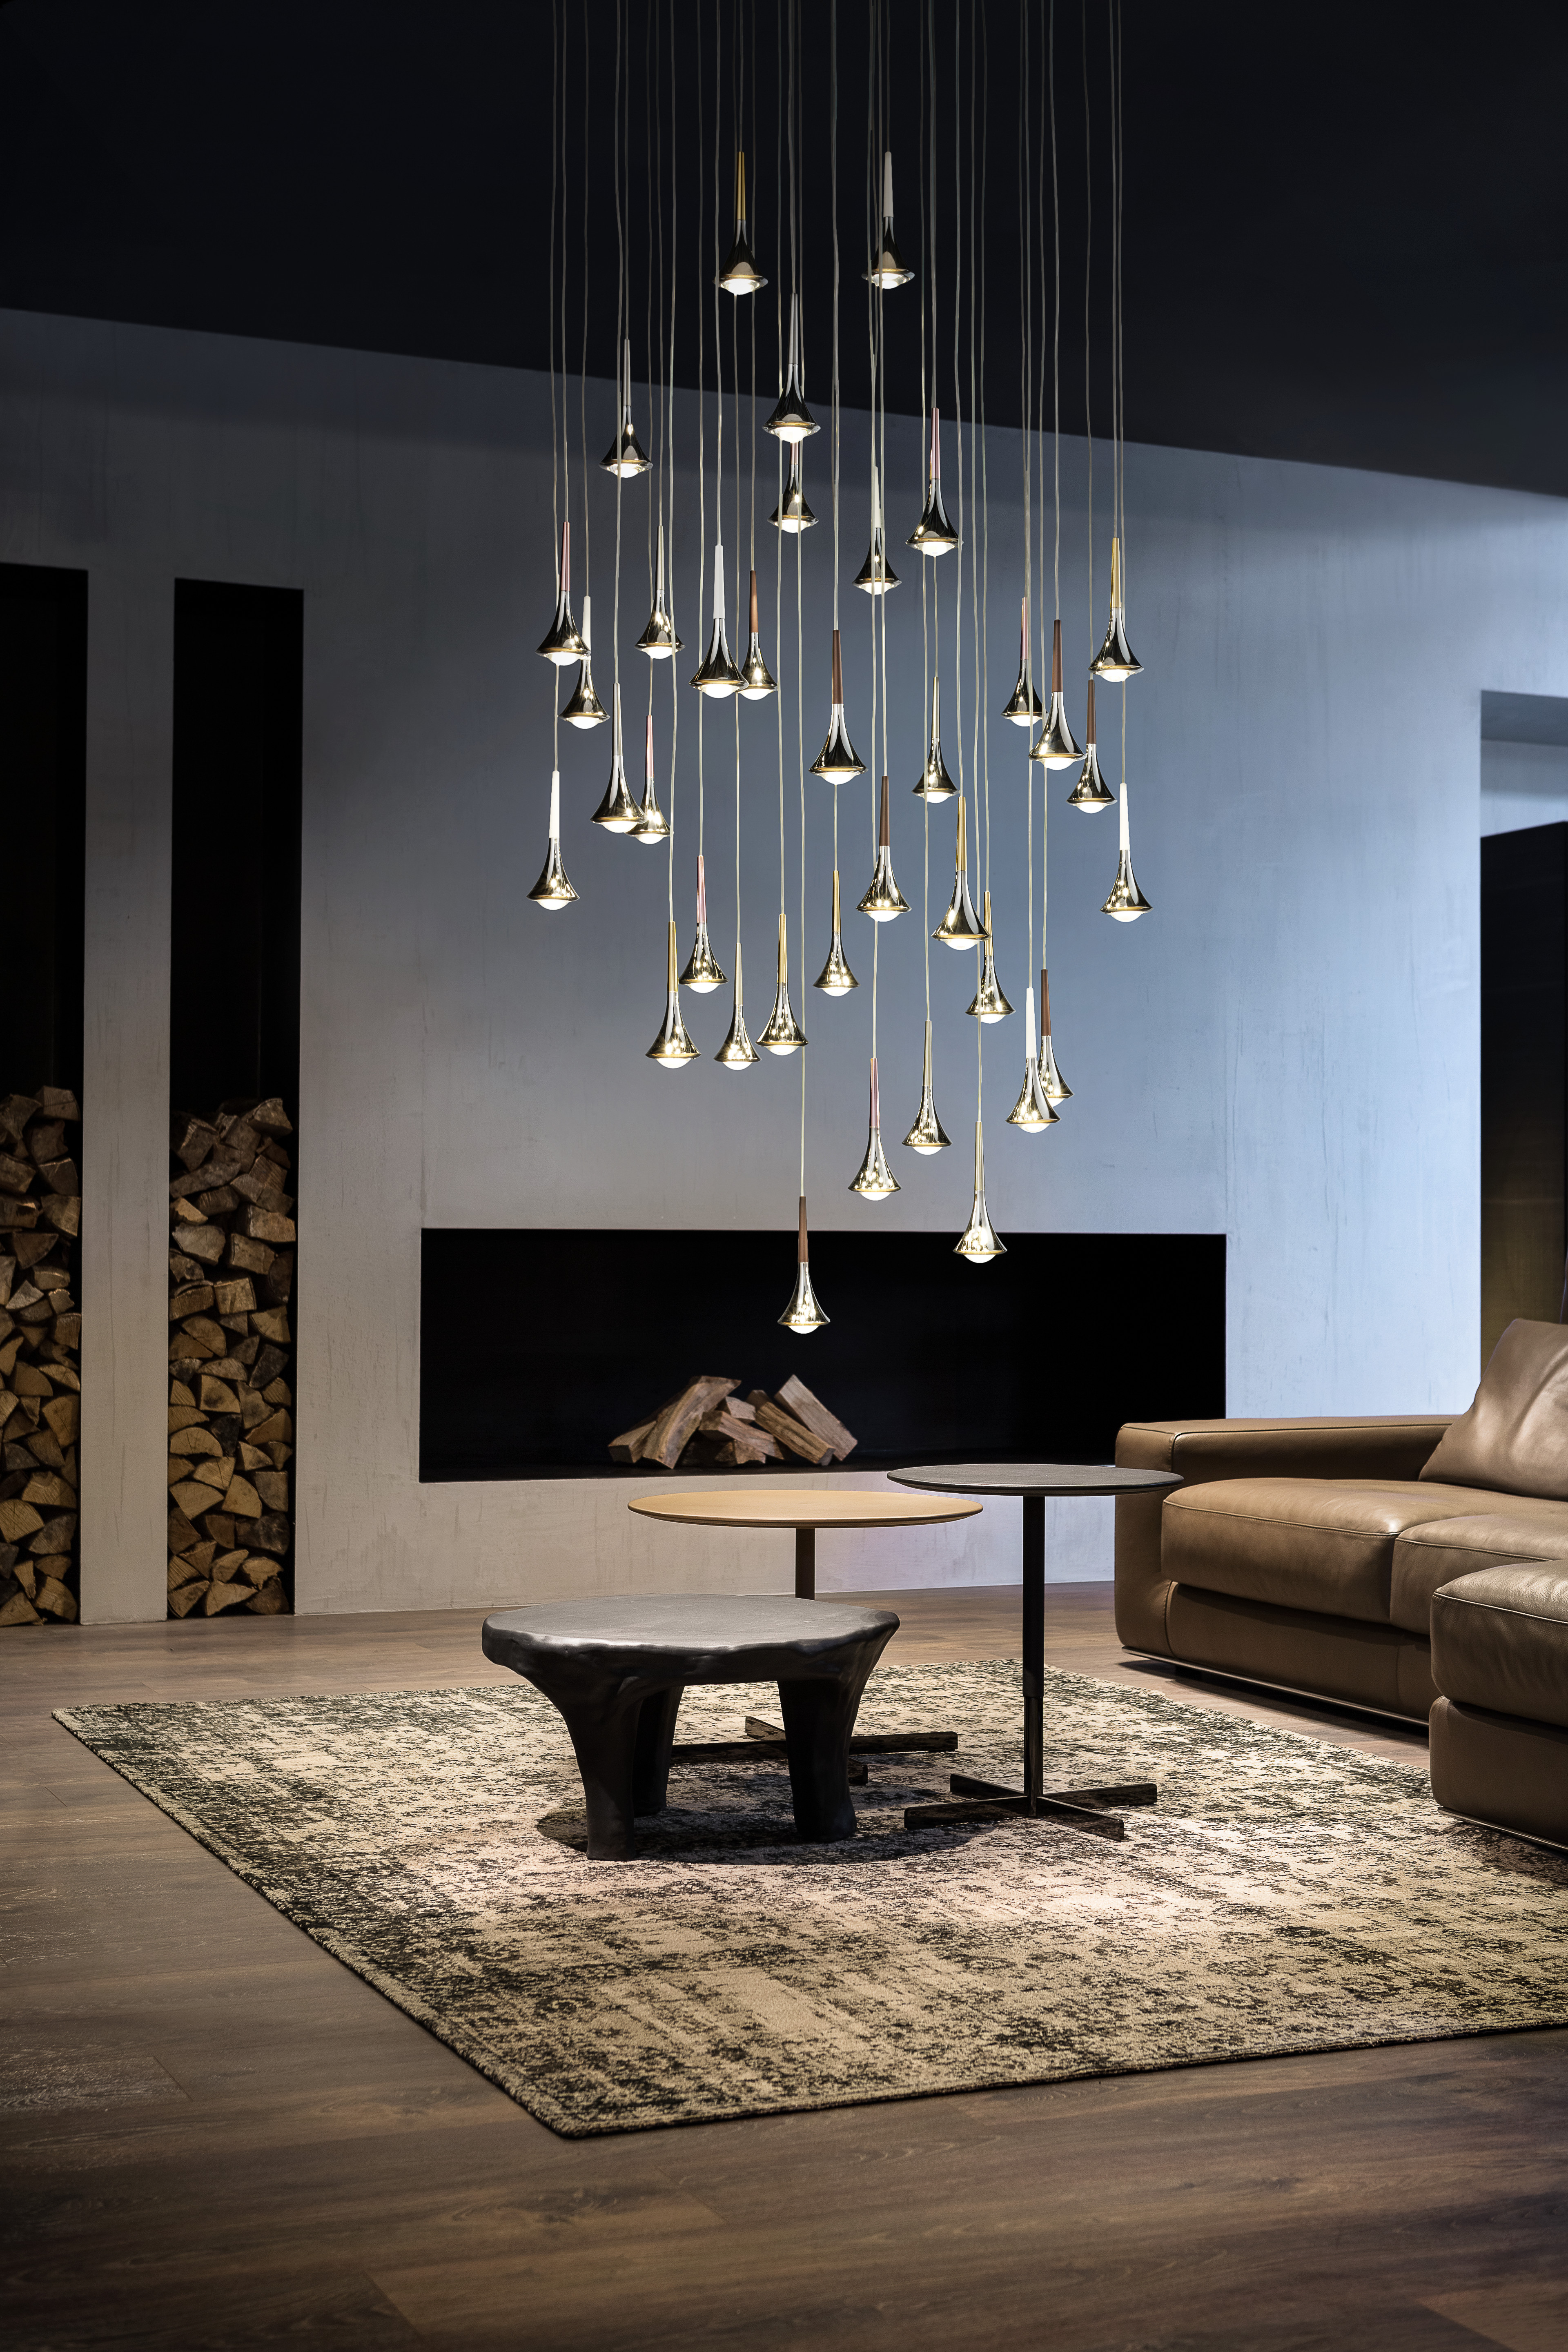 Studio Italia Rain Amos Lighting Home